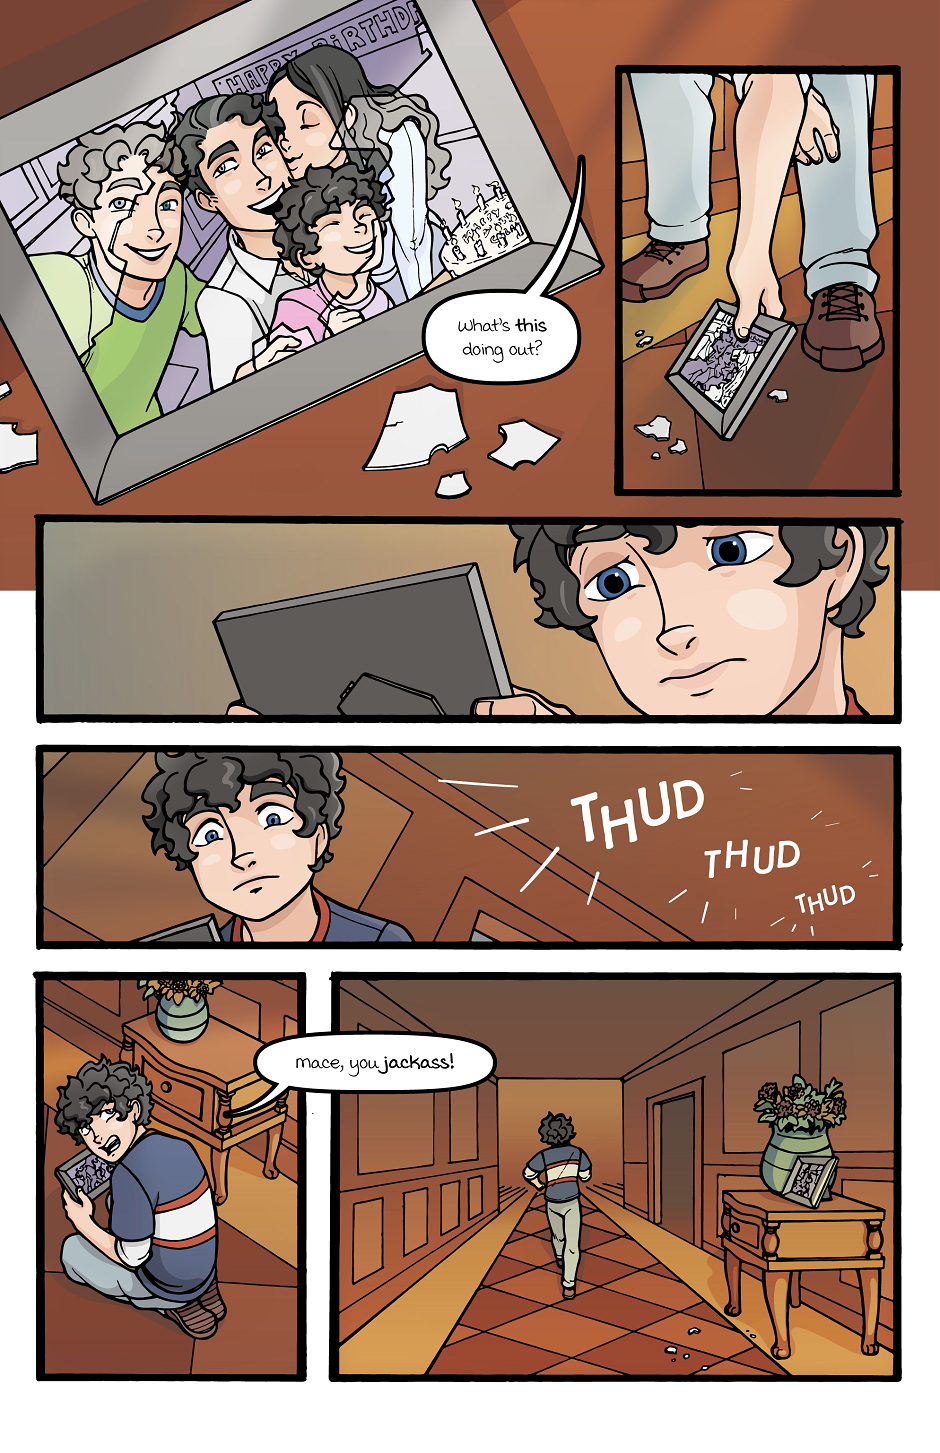 MBB_Ch02-P17_forSS.png